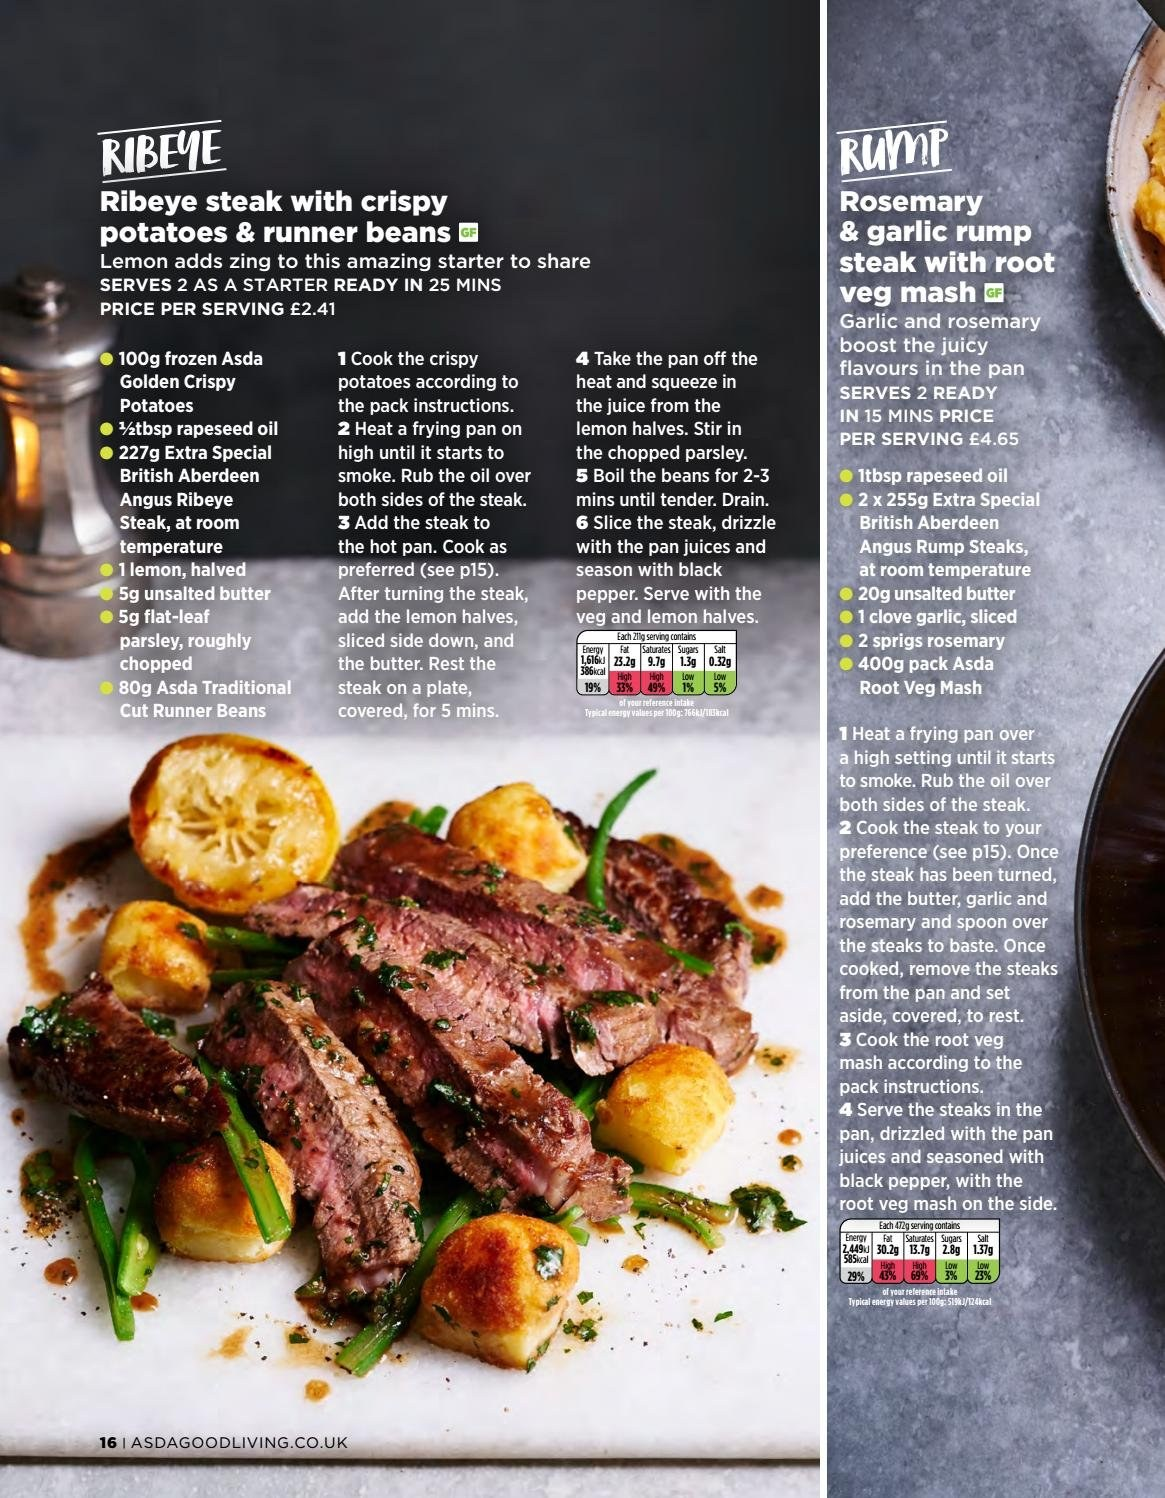 ASDA offer  - 1.2.2019 - 28.2.2019 - Sales products - beans, butter, fa, frozen, garlic, rosemary, spoon, potatoes, pan, parsley, steak, juice, black pepper, pepper. Page 16.